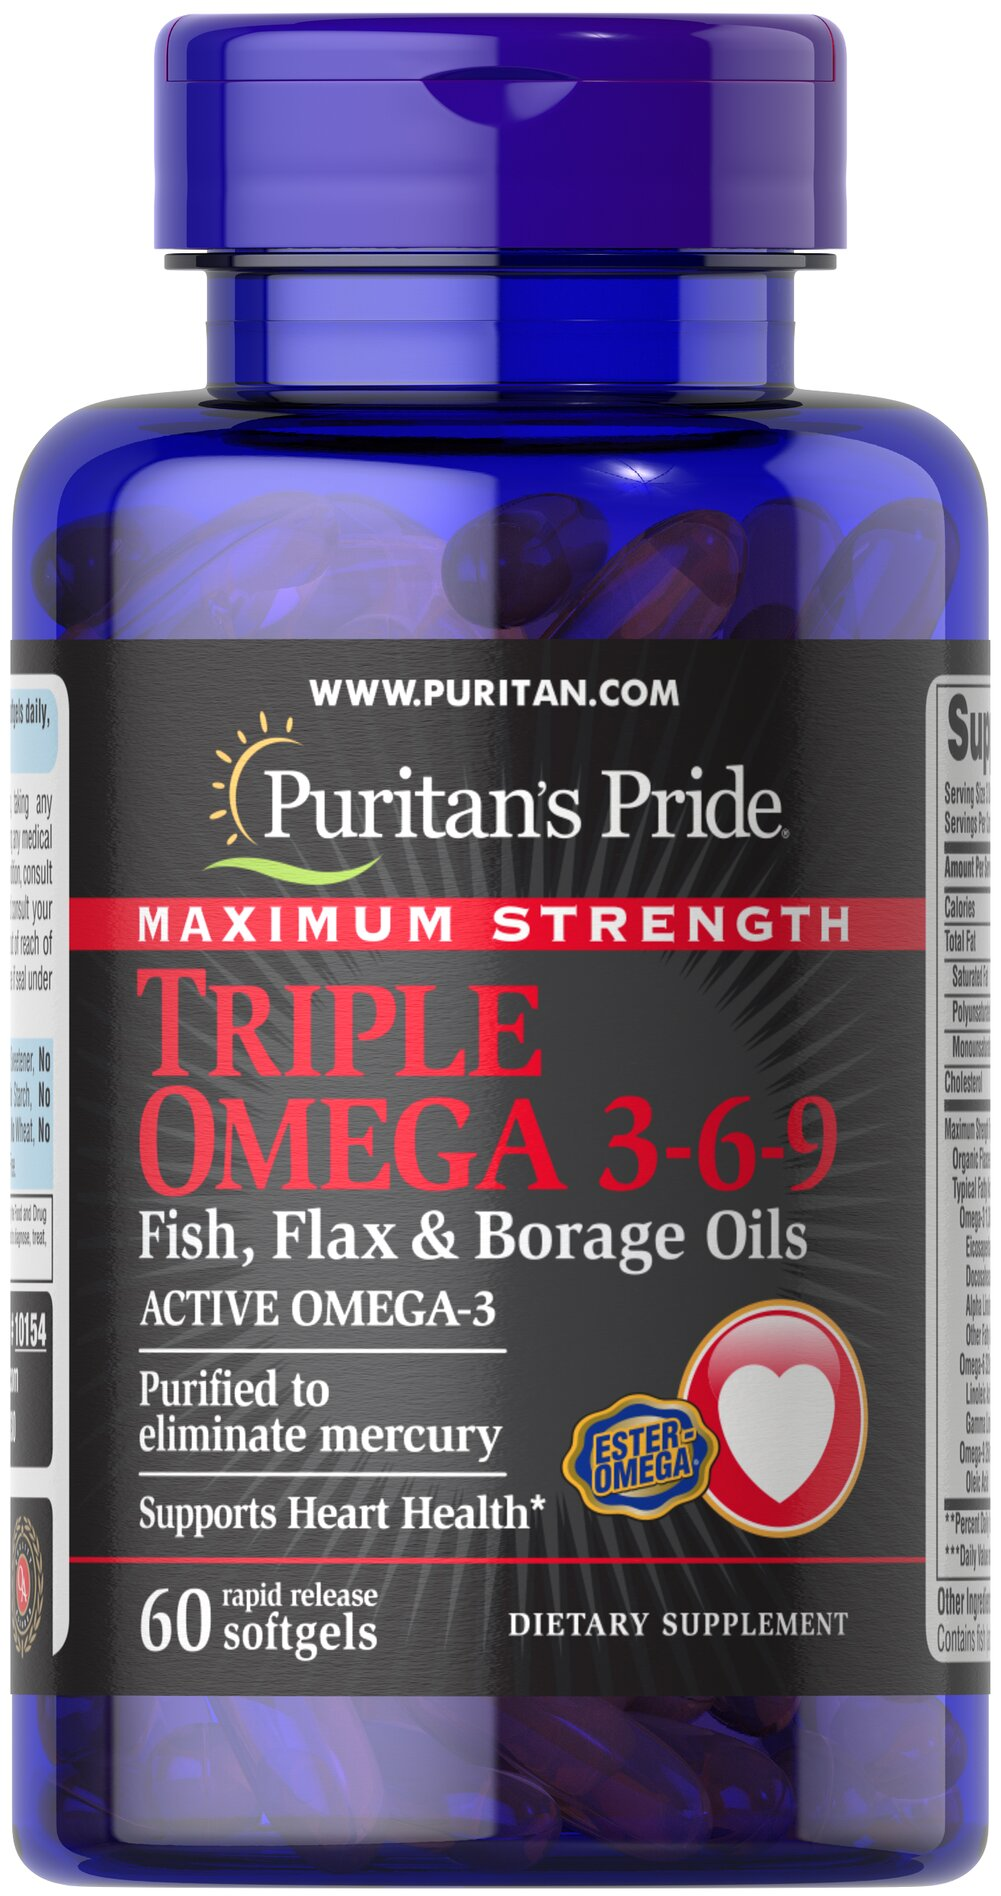 Maximum Strength Triple Omega 3-6-9 Fish, Flax & Borage Oils  60 Softgels  $11.99